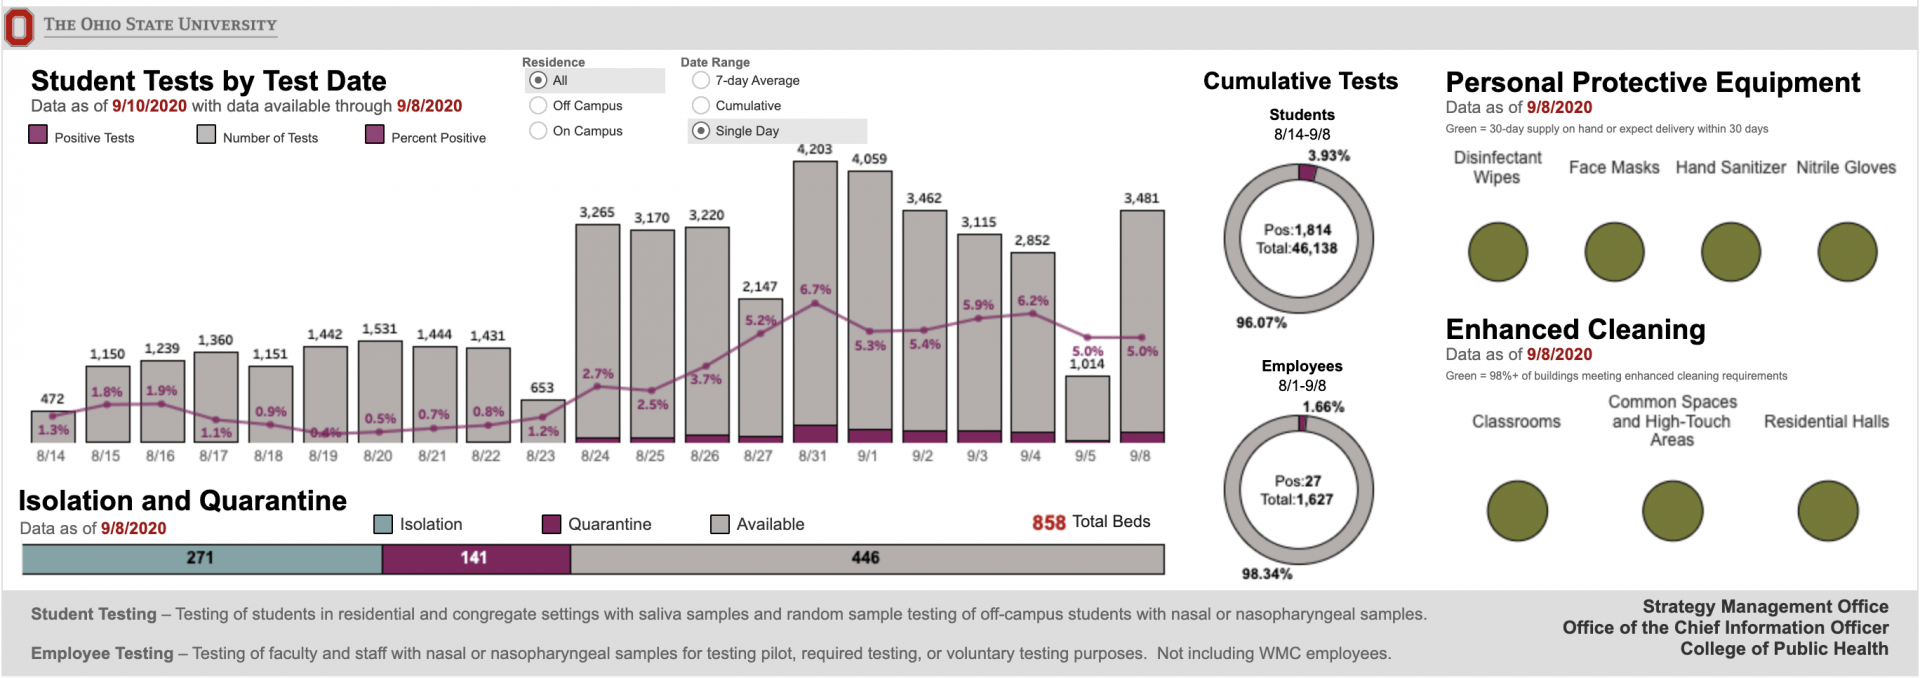 Ohio State's COVID-19 data dashboard as of September 10. 2020